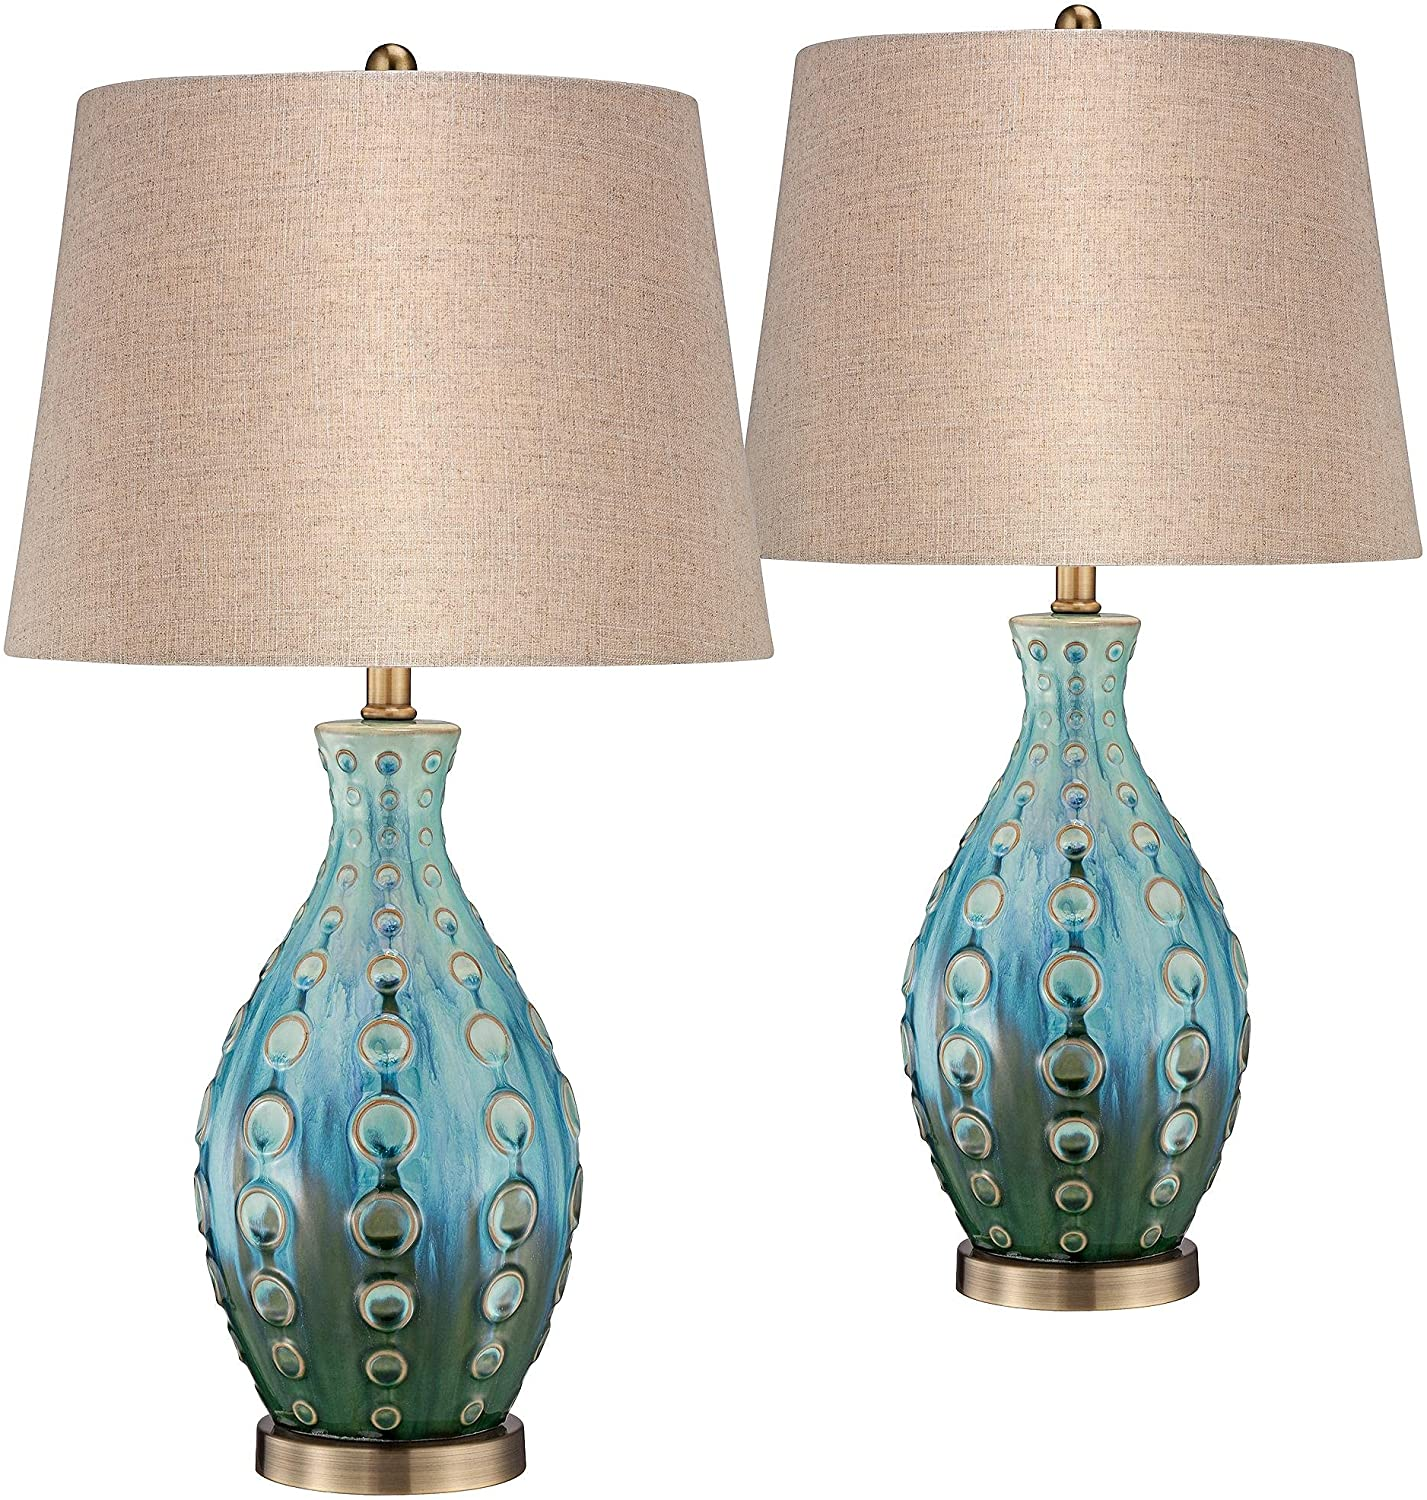 Mid Max 87% Free shipping anywhere in the nation OFF Century Modern Table Lamps Set Handmade of Ta Teal Ceramic 2